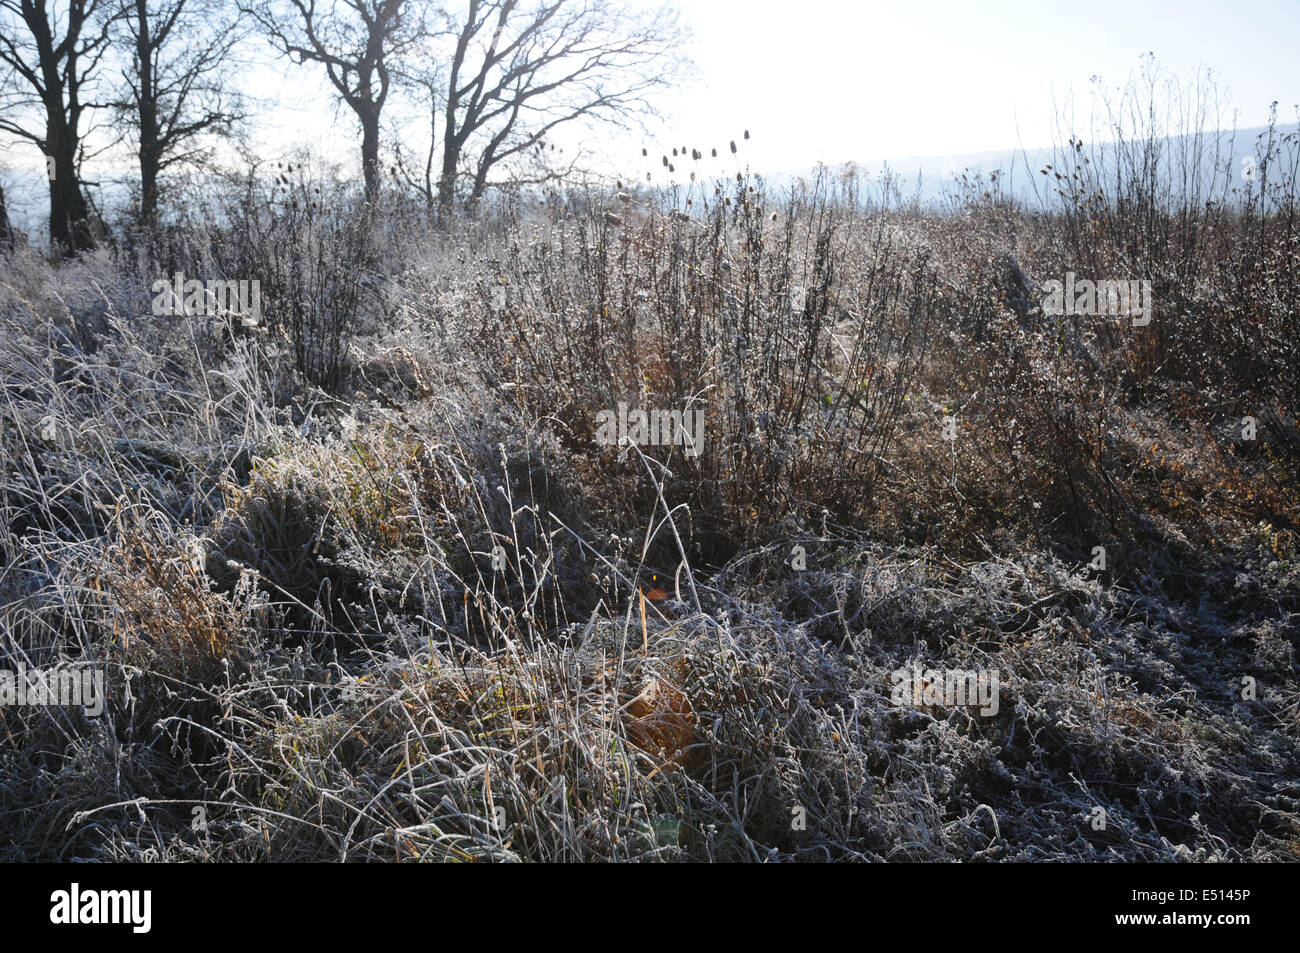 Herbs an grasses with ice-crystals - Stock Image